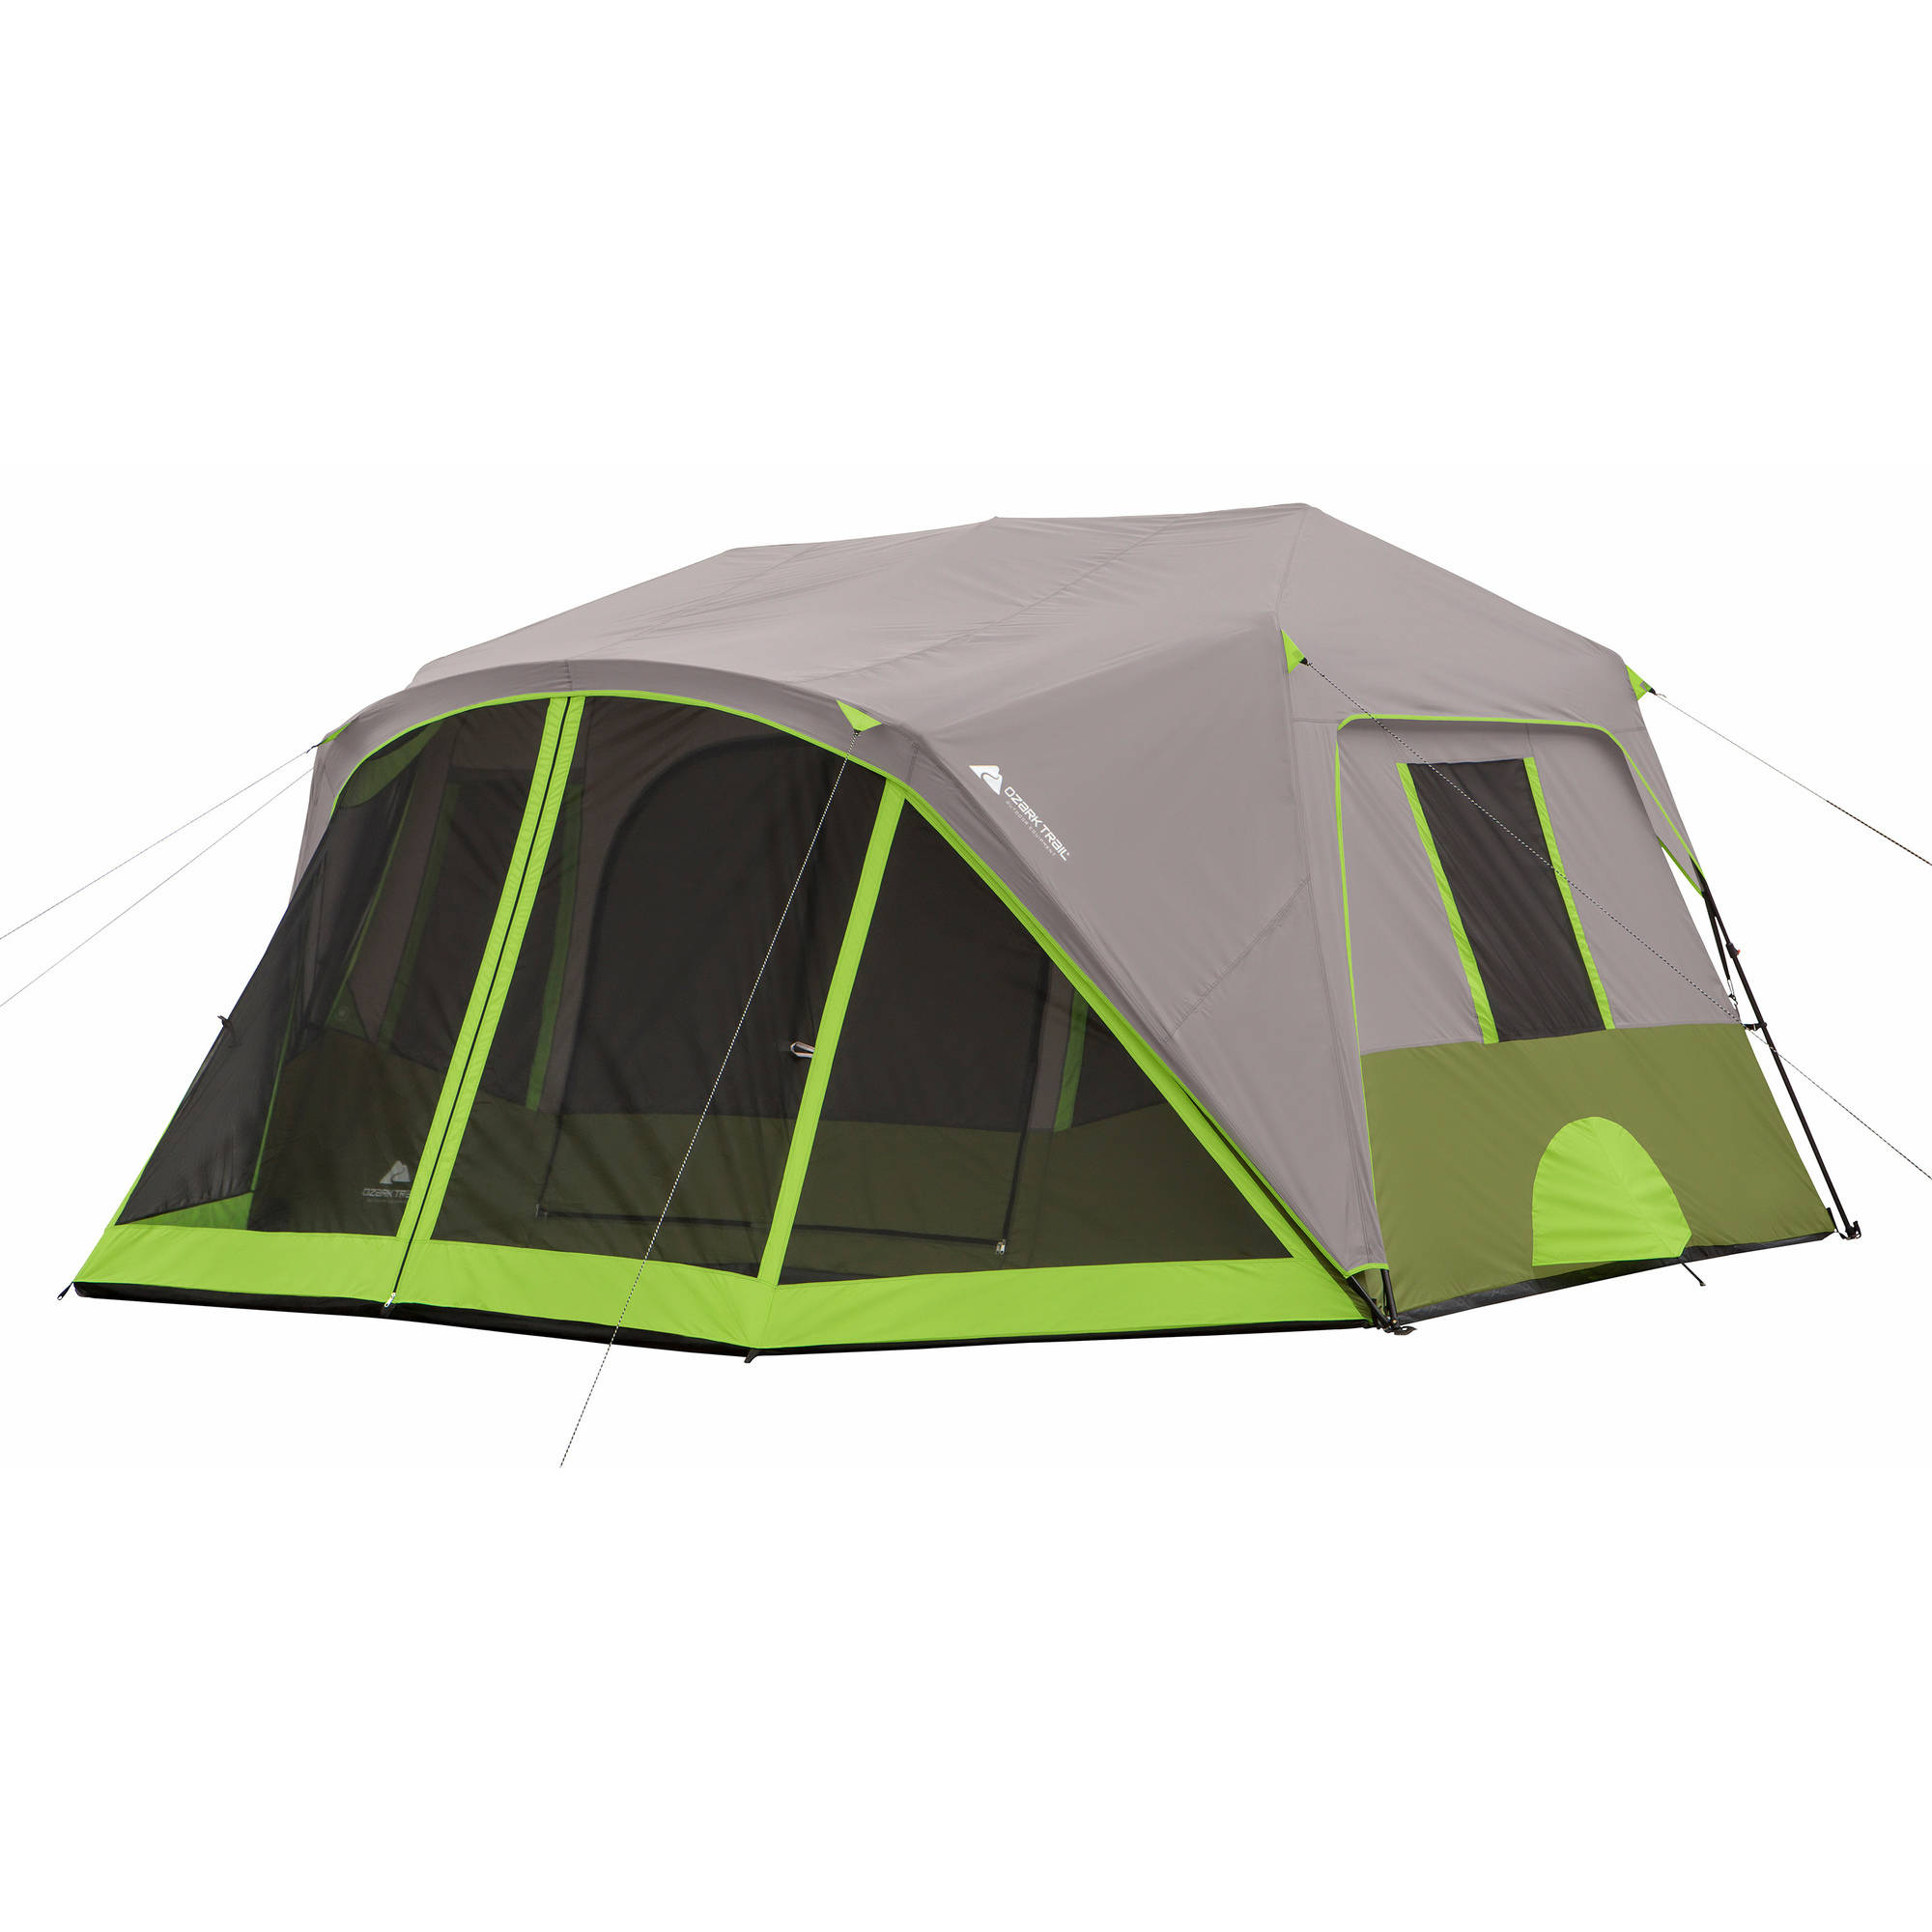 Ozark Trail 9 Person 2 Room Instant Cabin Tent with Screen Room - Walmart.com  sc 1 st  Walmart.com & Ozark Trail 9 Person 2 Room Instant Cabin Tent with Screen Room ...